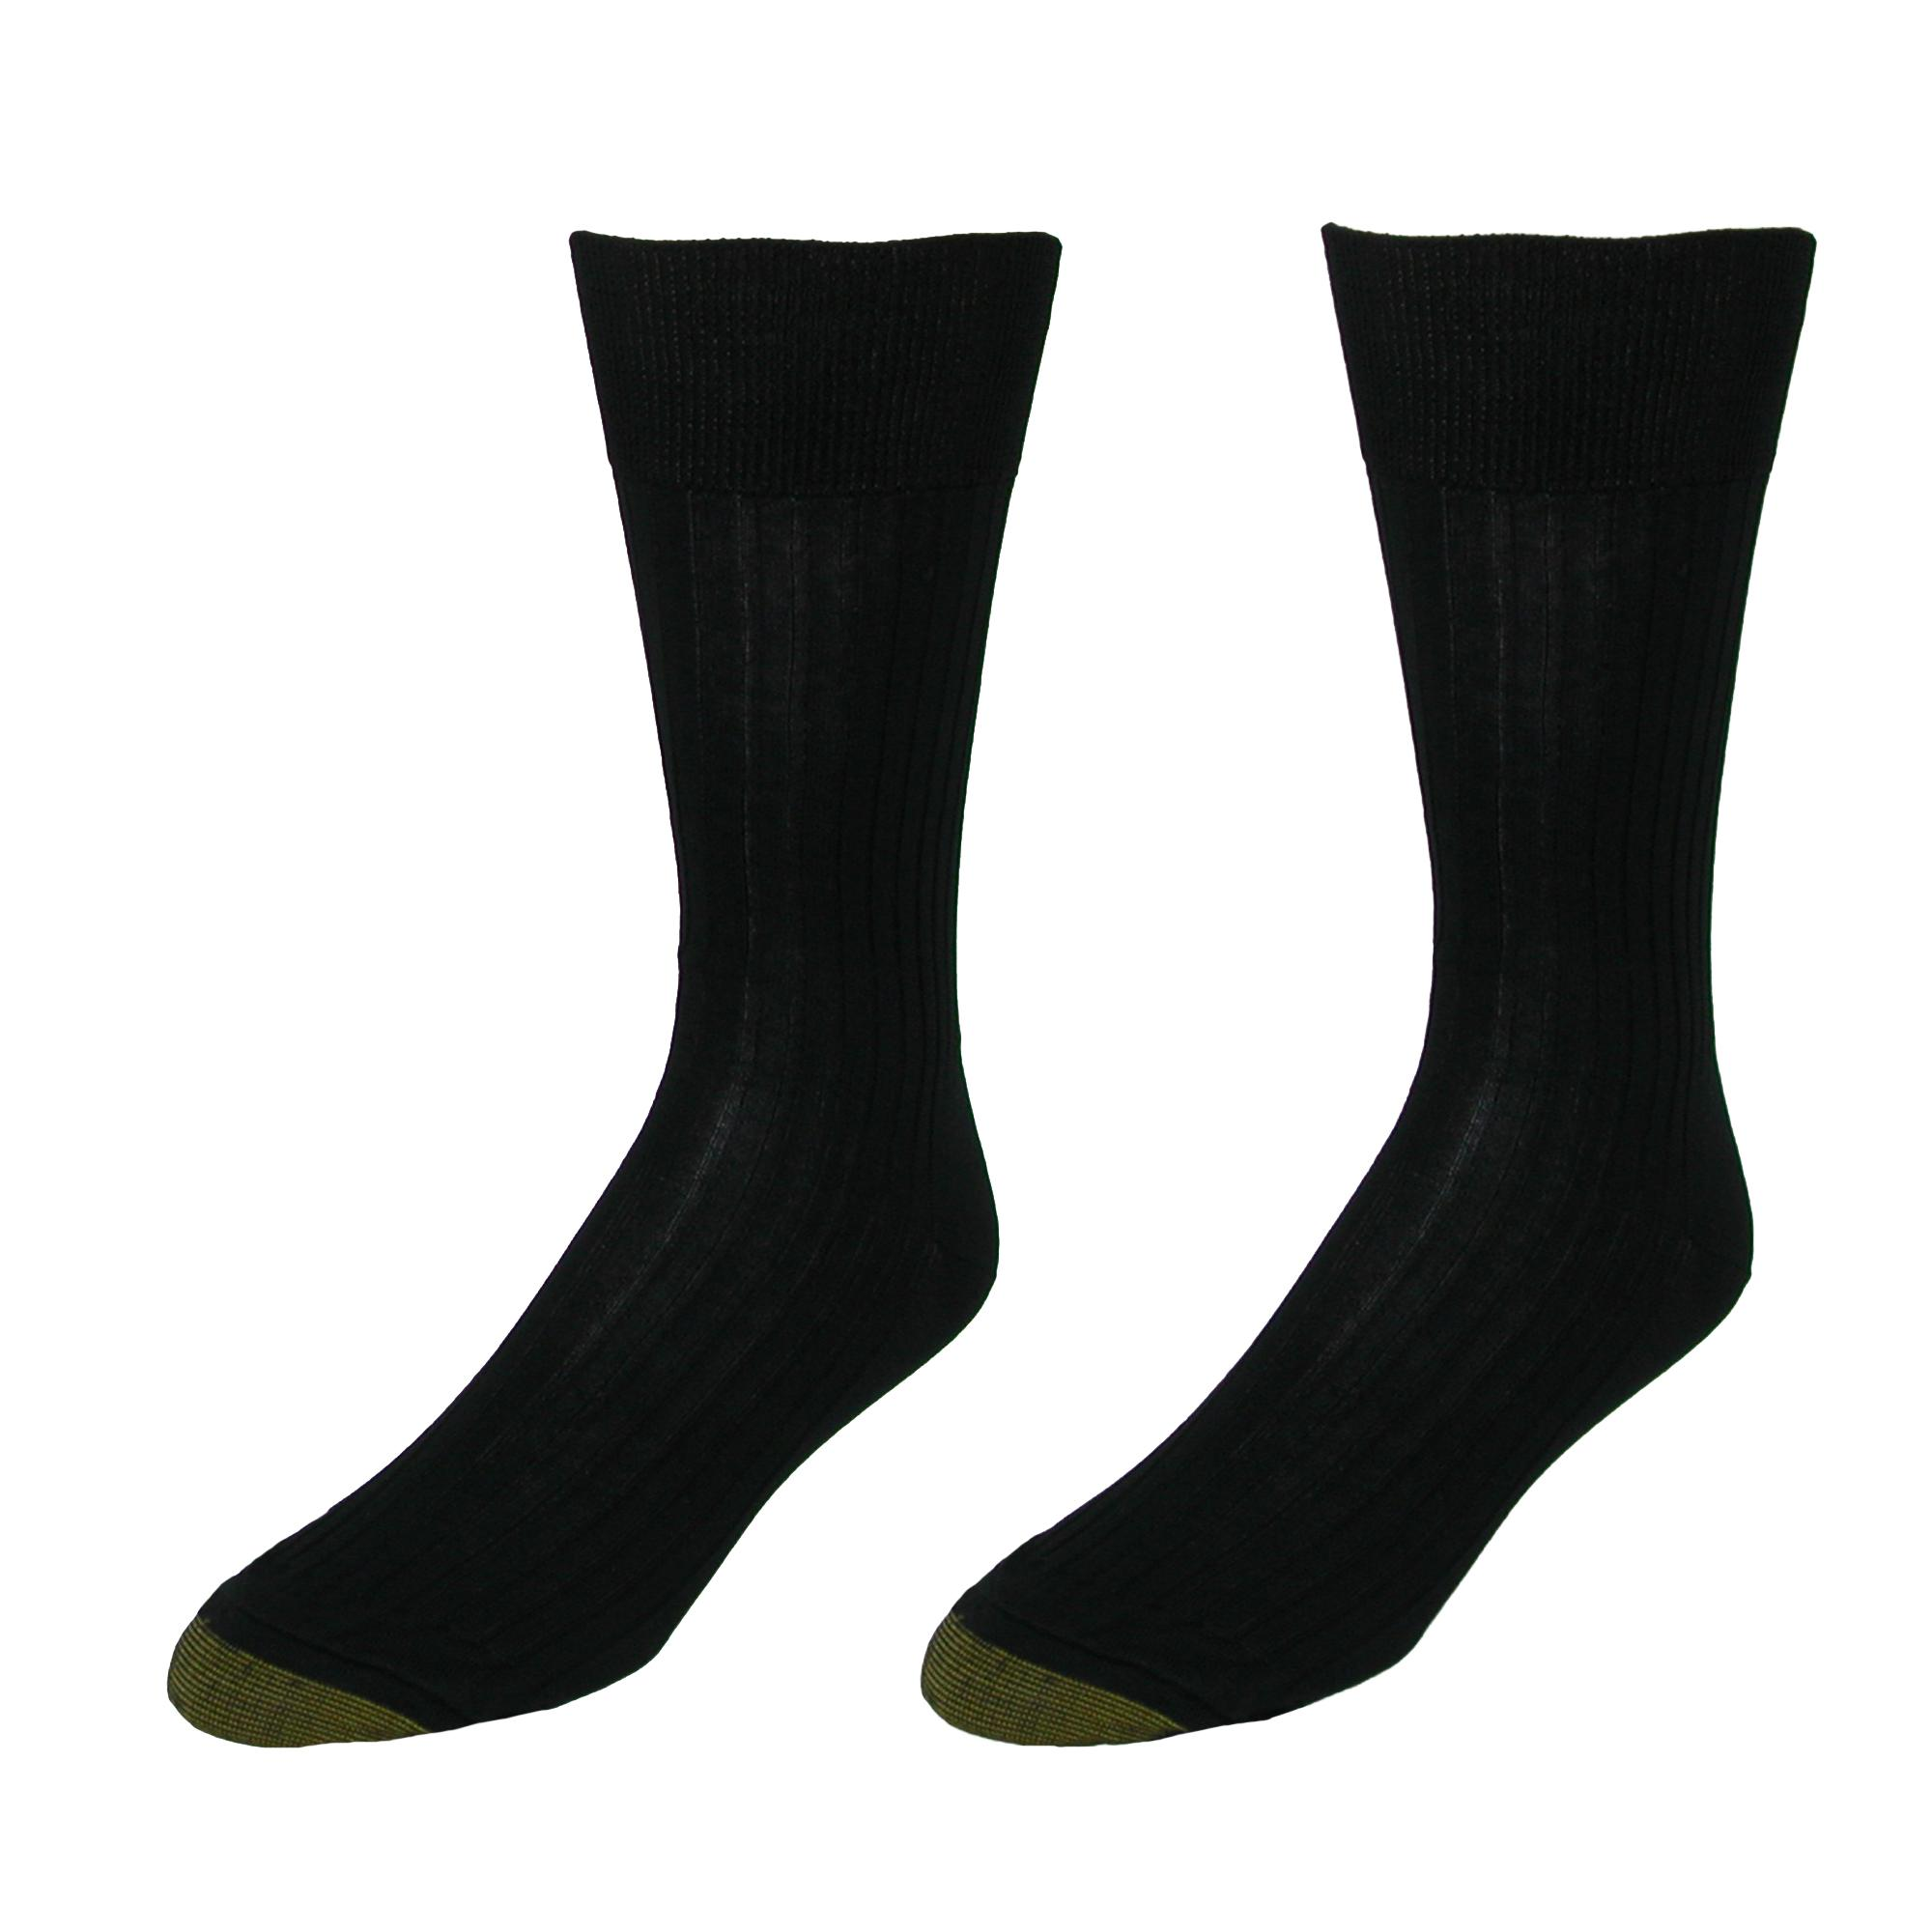 New Gold Toe Men/'s Comfort Top Dress Socks Extended Size Available 2 Pair Pack